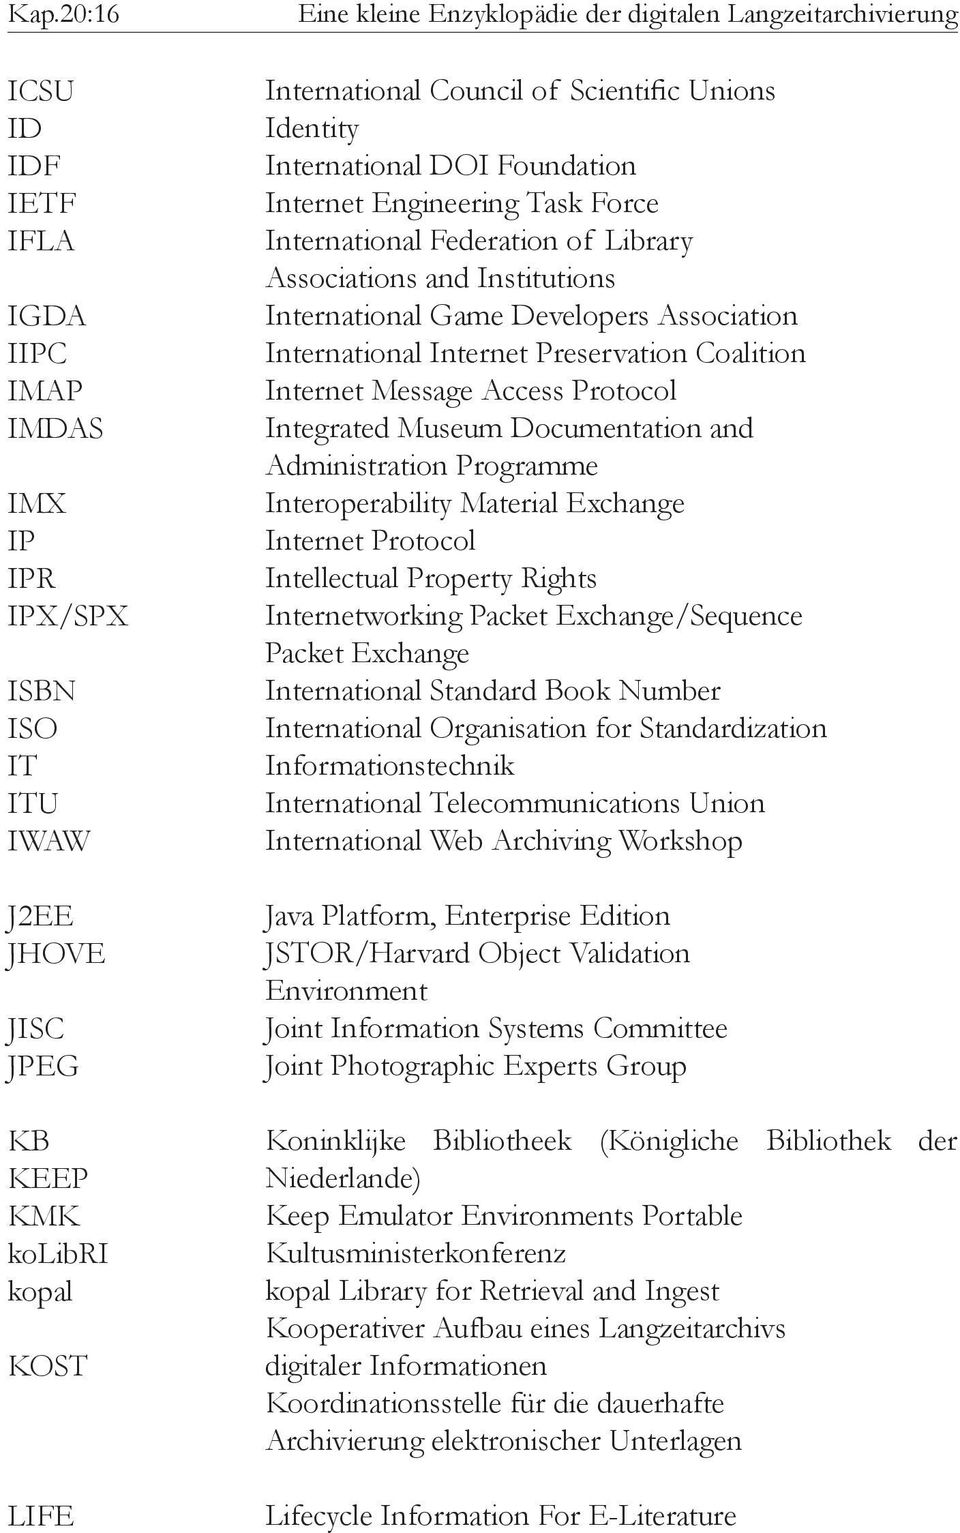 International Game Developers Association International Internet Preservation Coalition Internet Message Access Protocol Integrated Museum Documentation and Administration Programme Interoperability